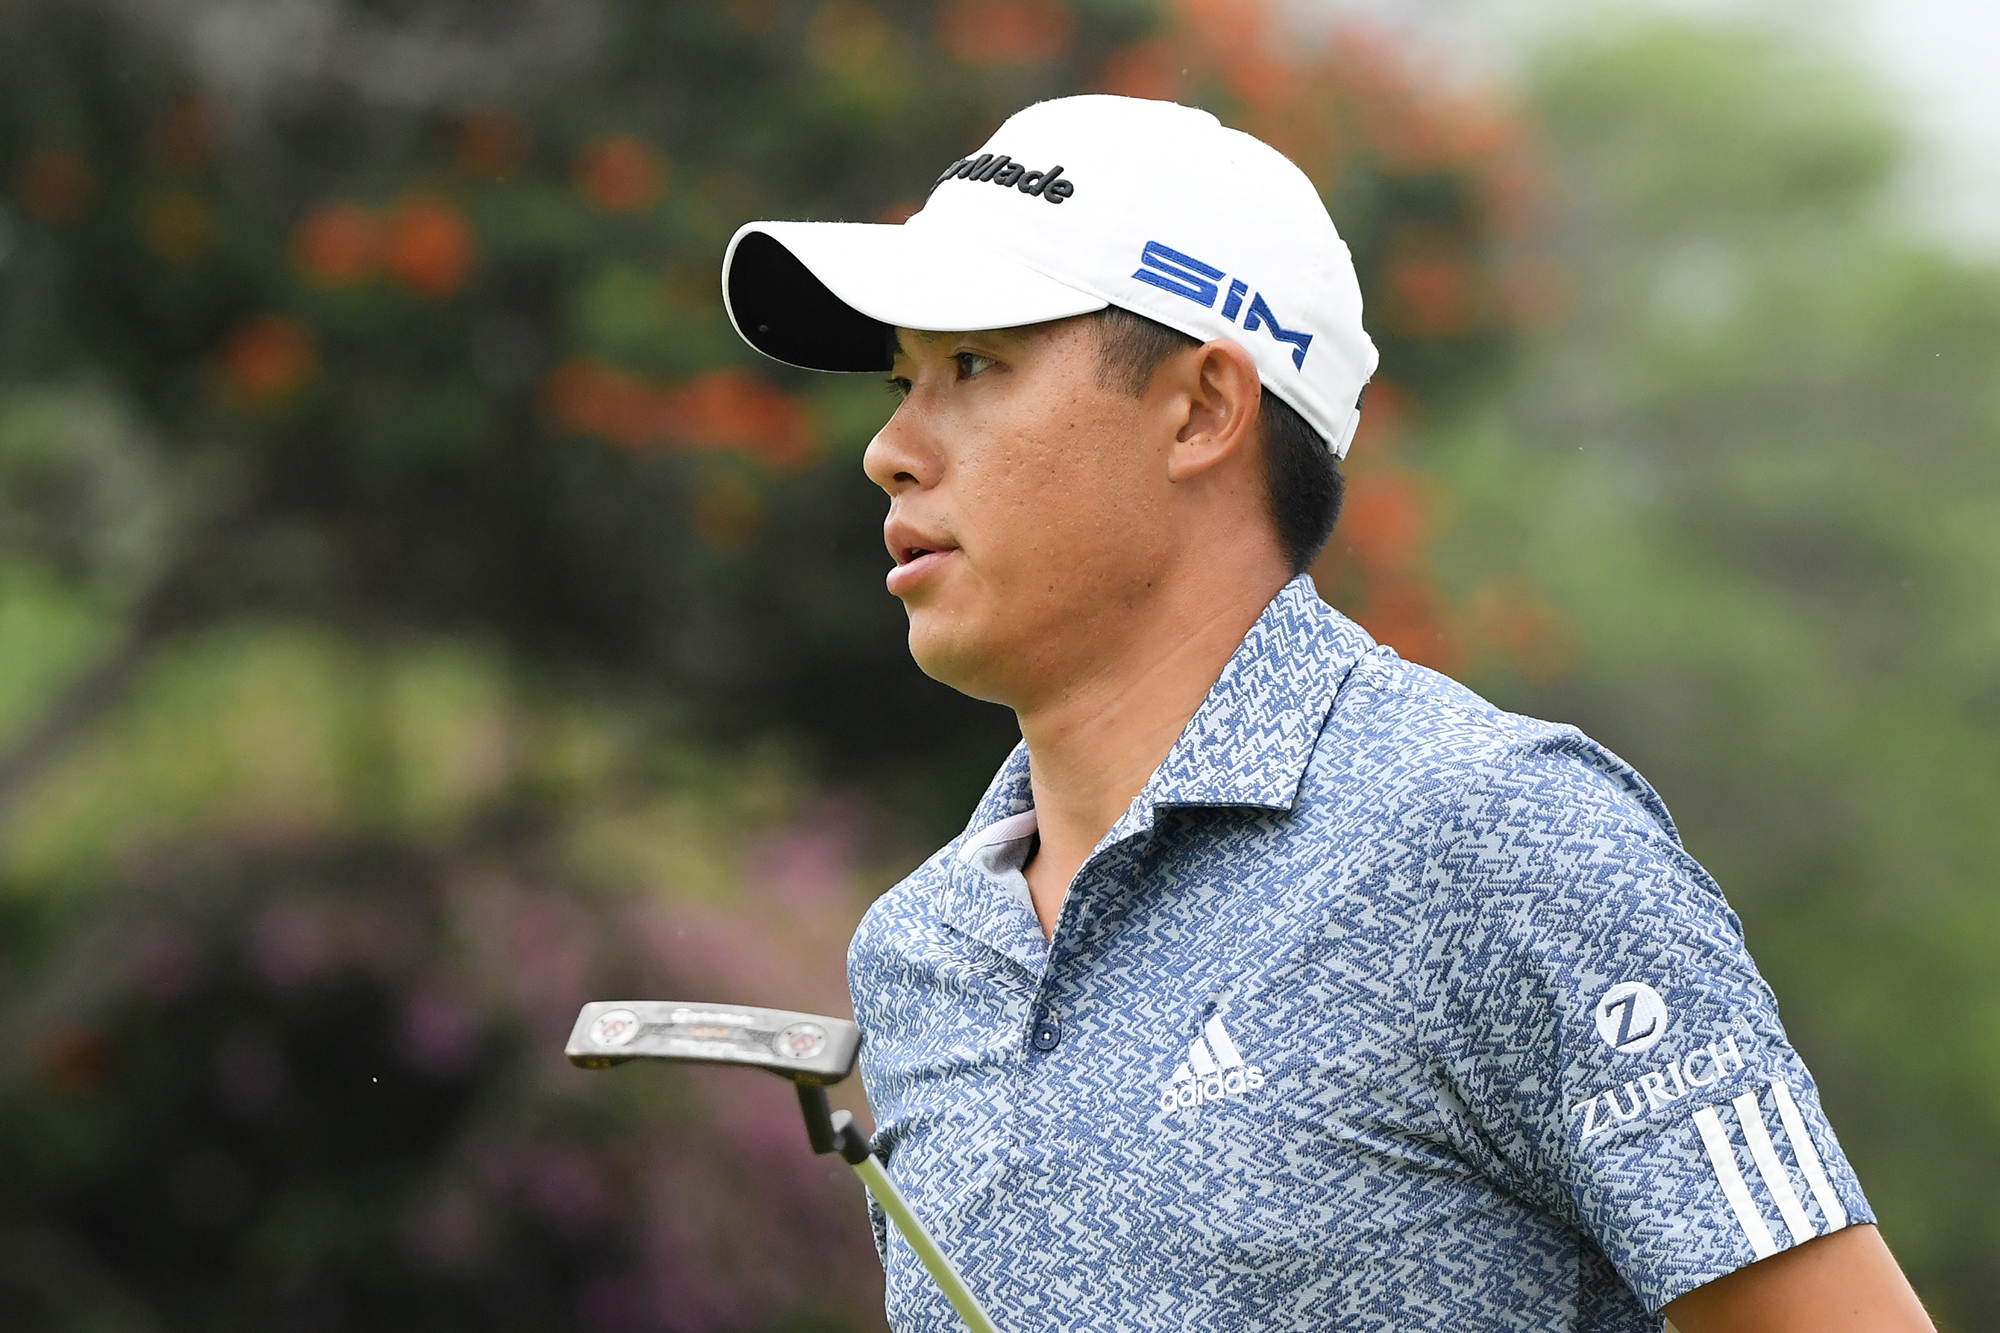 Collin Morikawa Switches Putters, Shoots 66 At Memorial